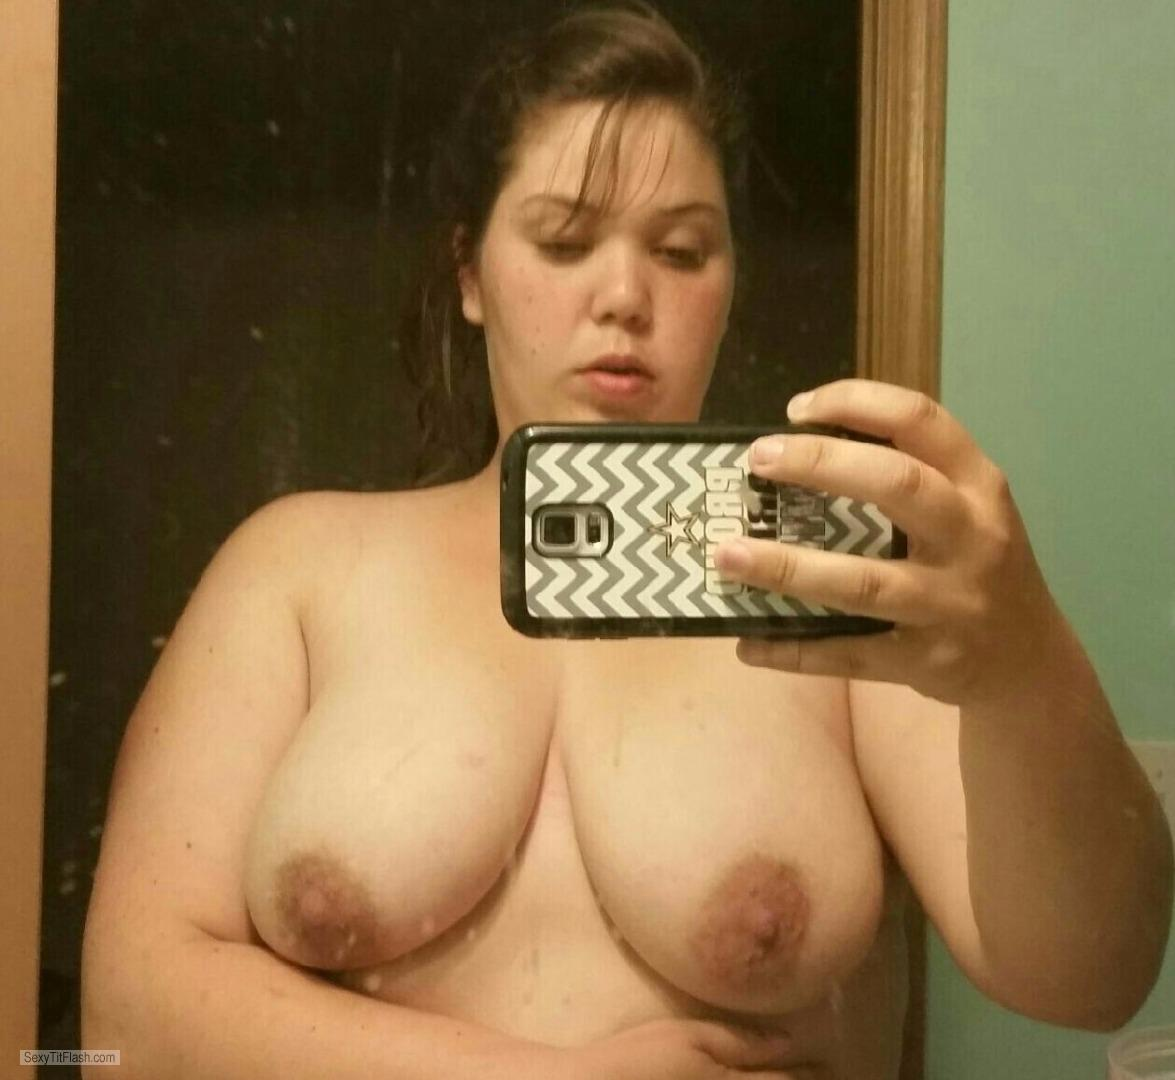 Tit Flash: My Big Tits (Selfie) - Topless Jenny from United States